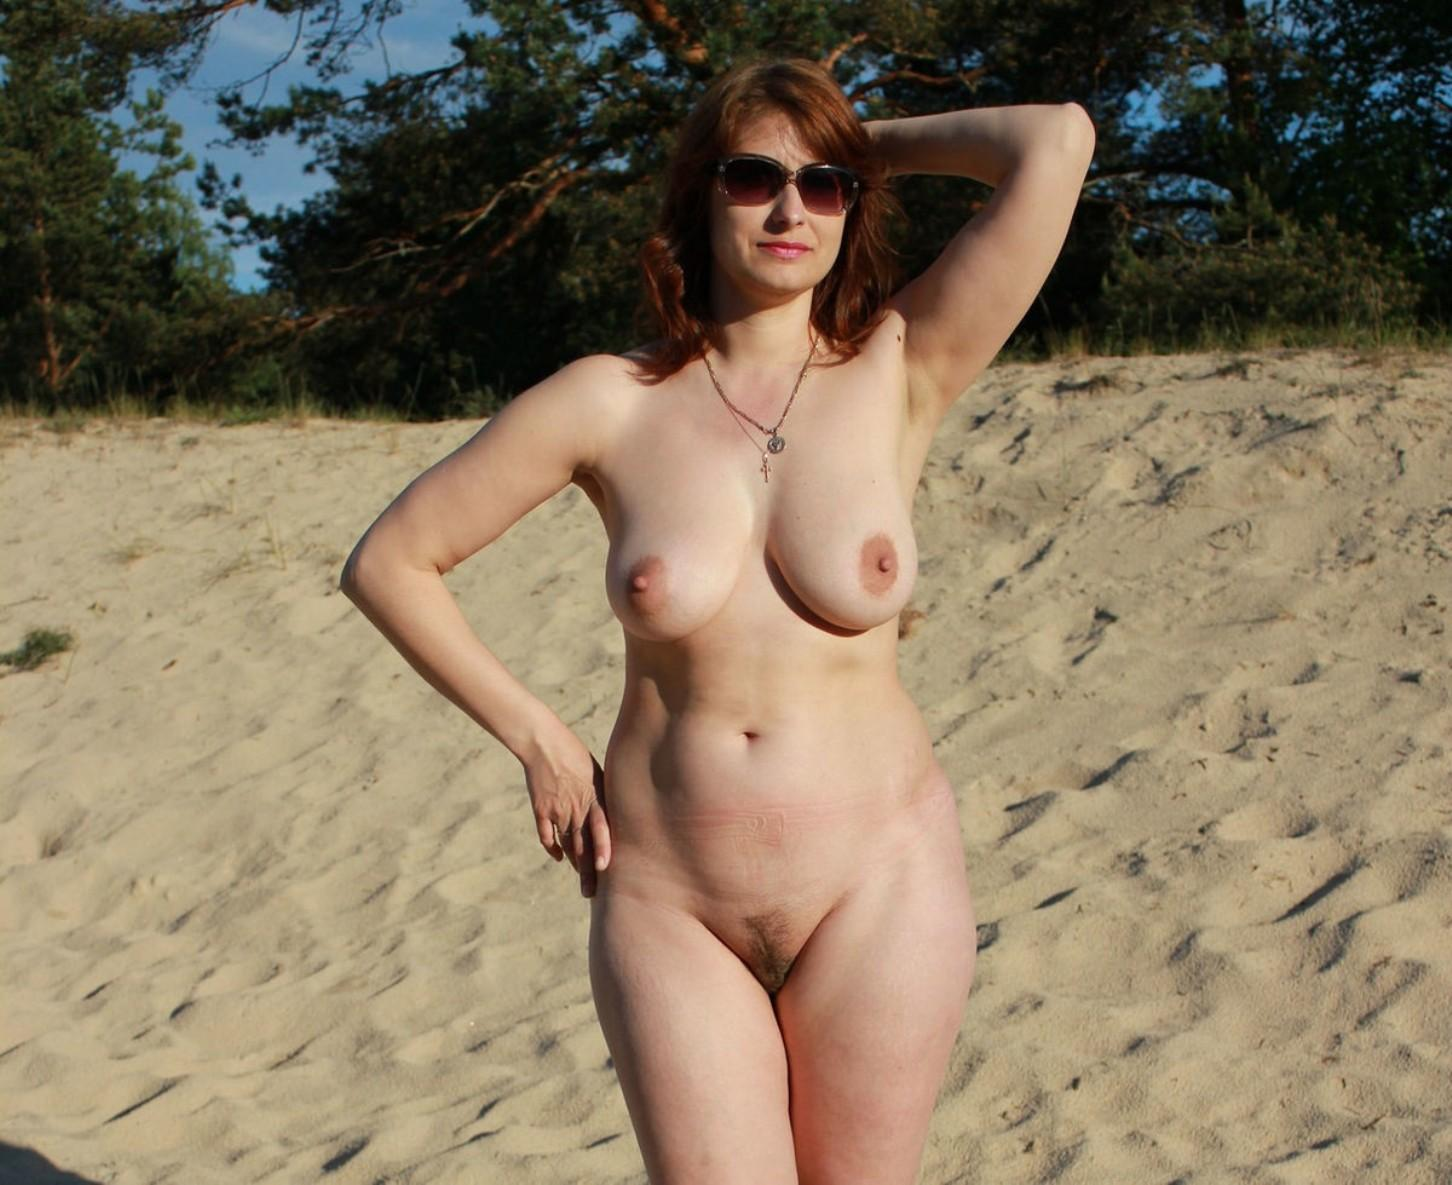 Beautiful mom sheds her bathing suit to go naked on a sandy beach. Redhead mature women baring natural breasts & little hairy pussy at the beach